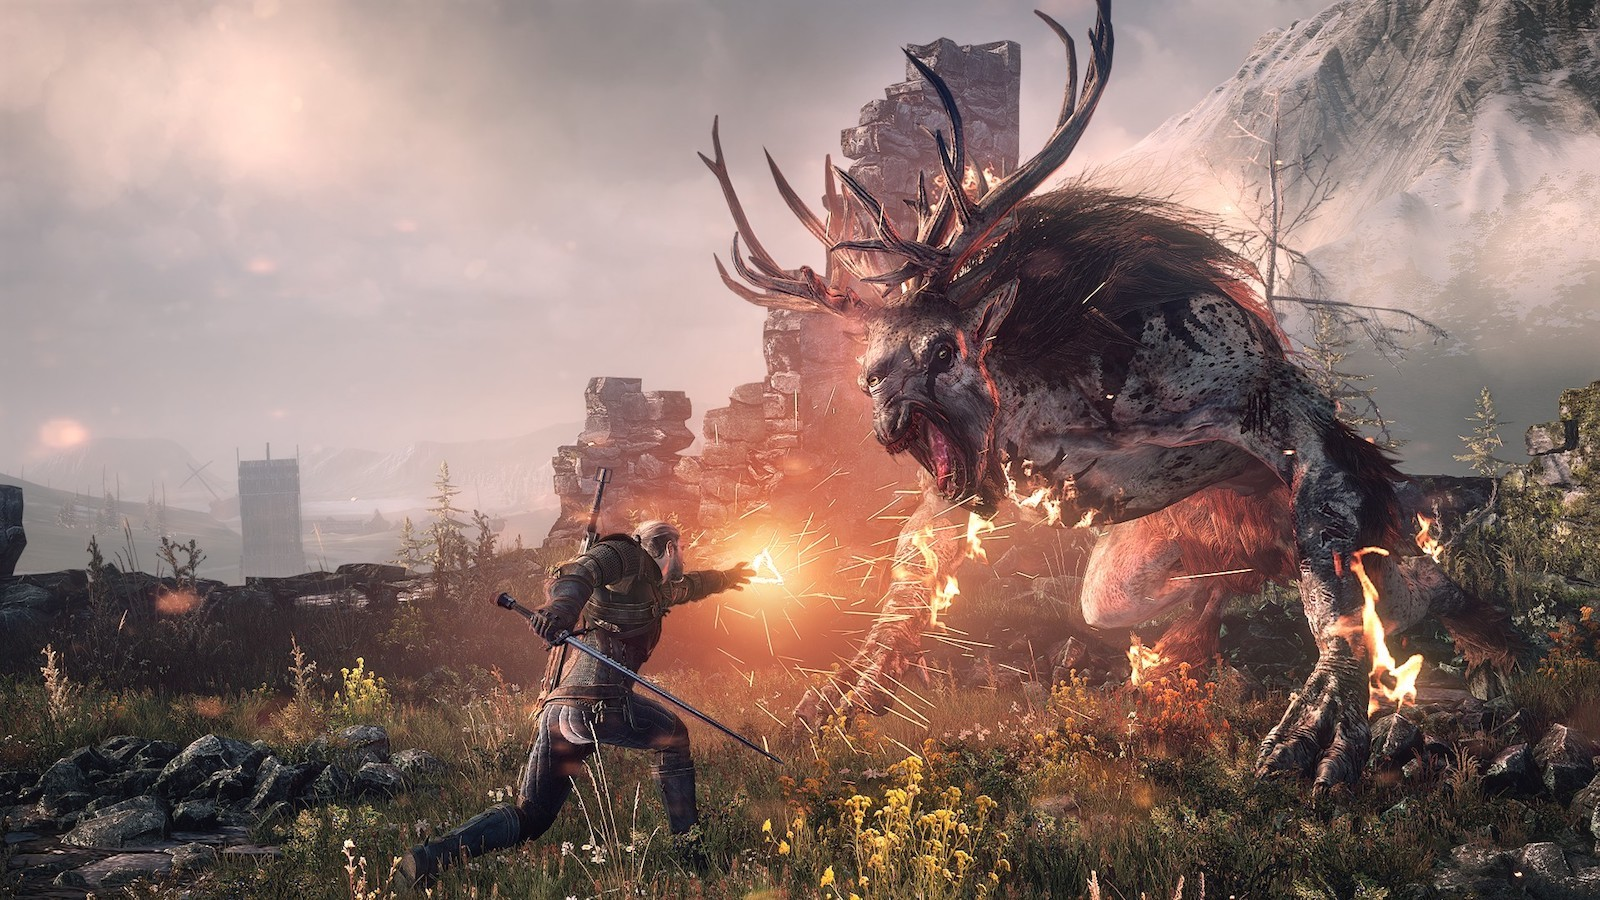 The Witcher 3 playstation, xbox, игры, компьютерные игры